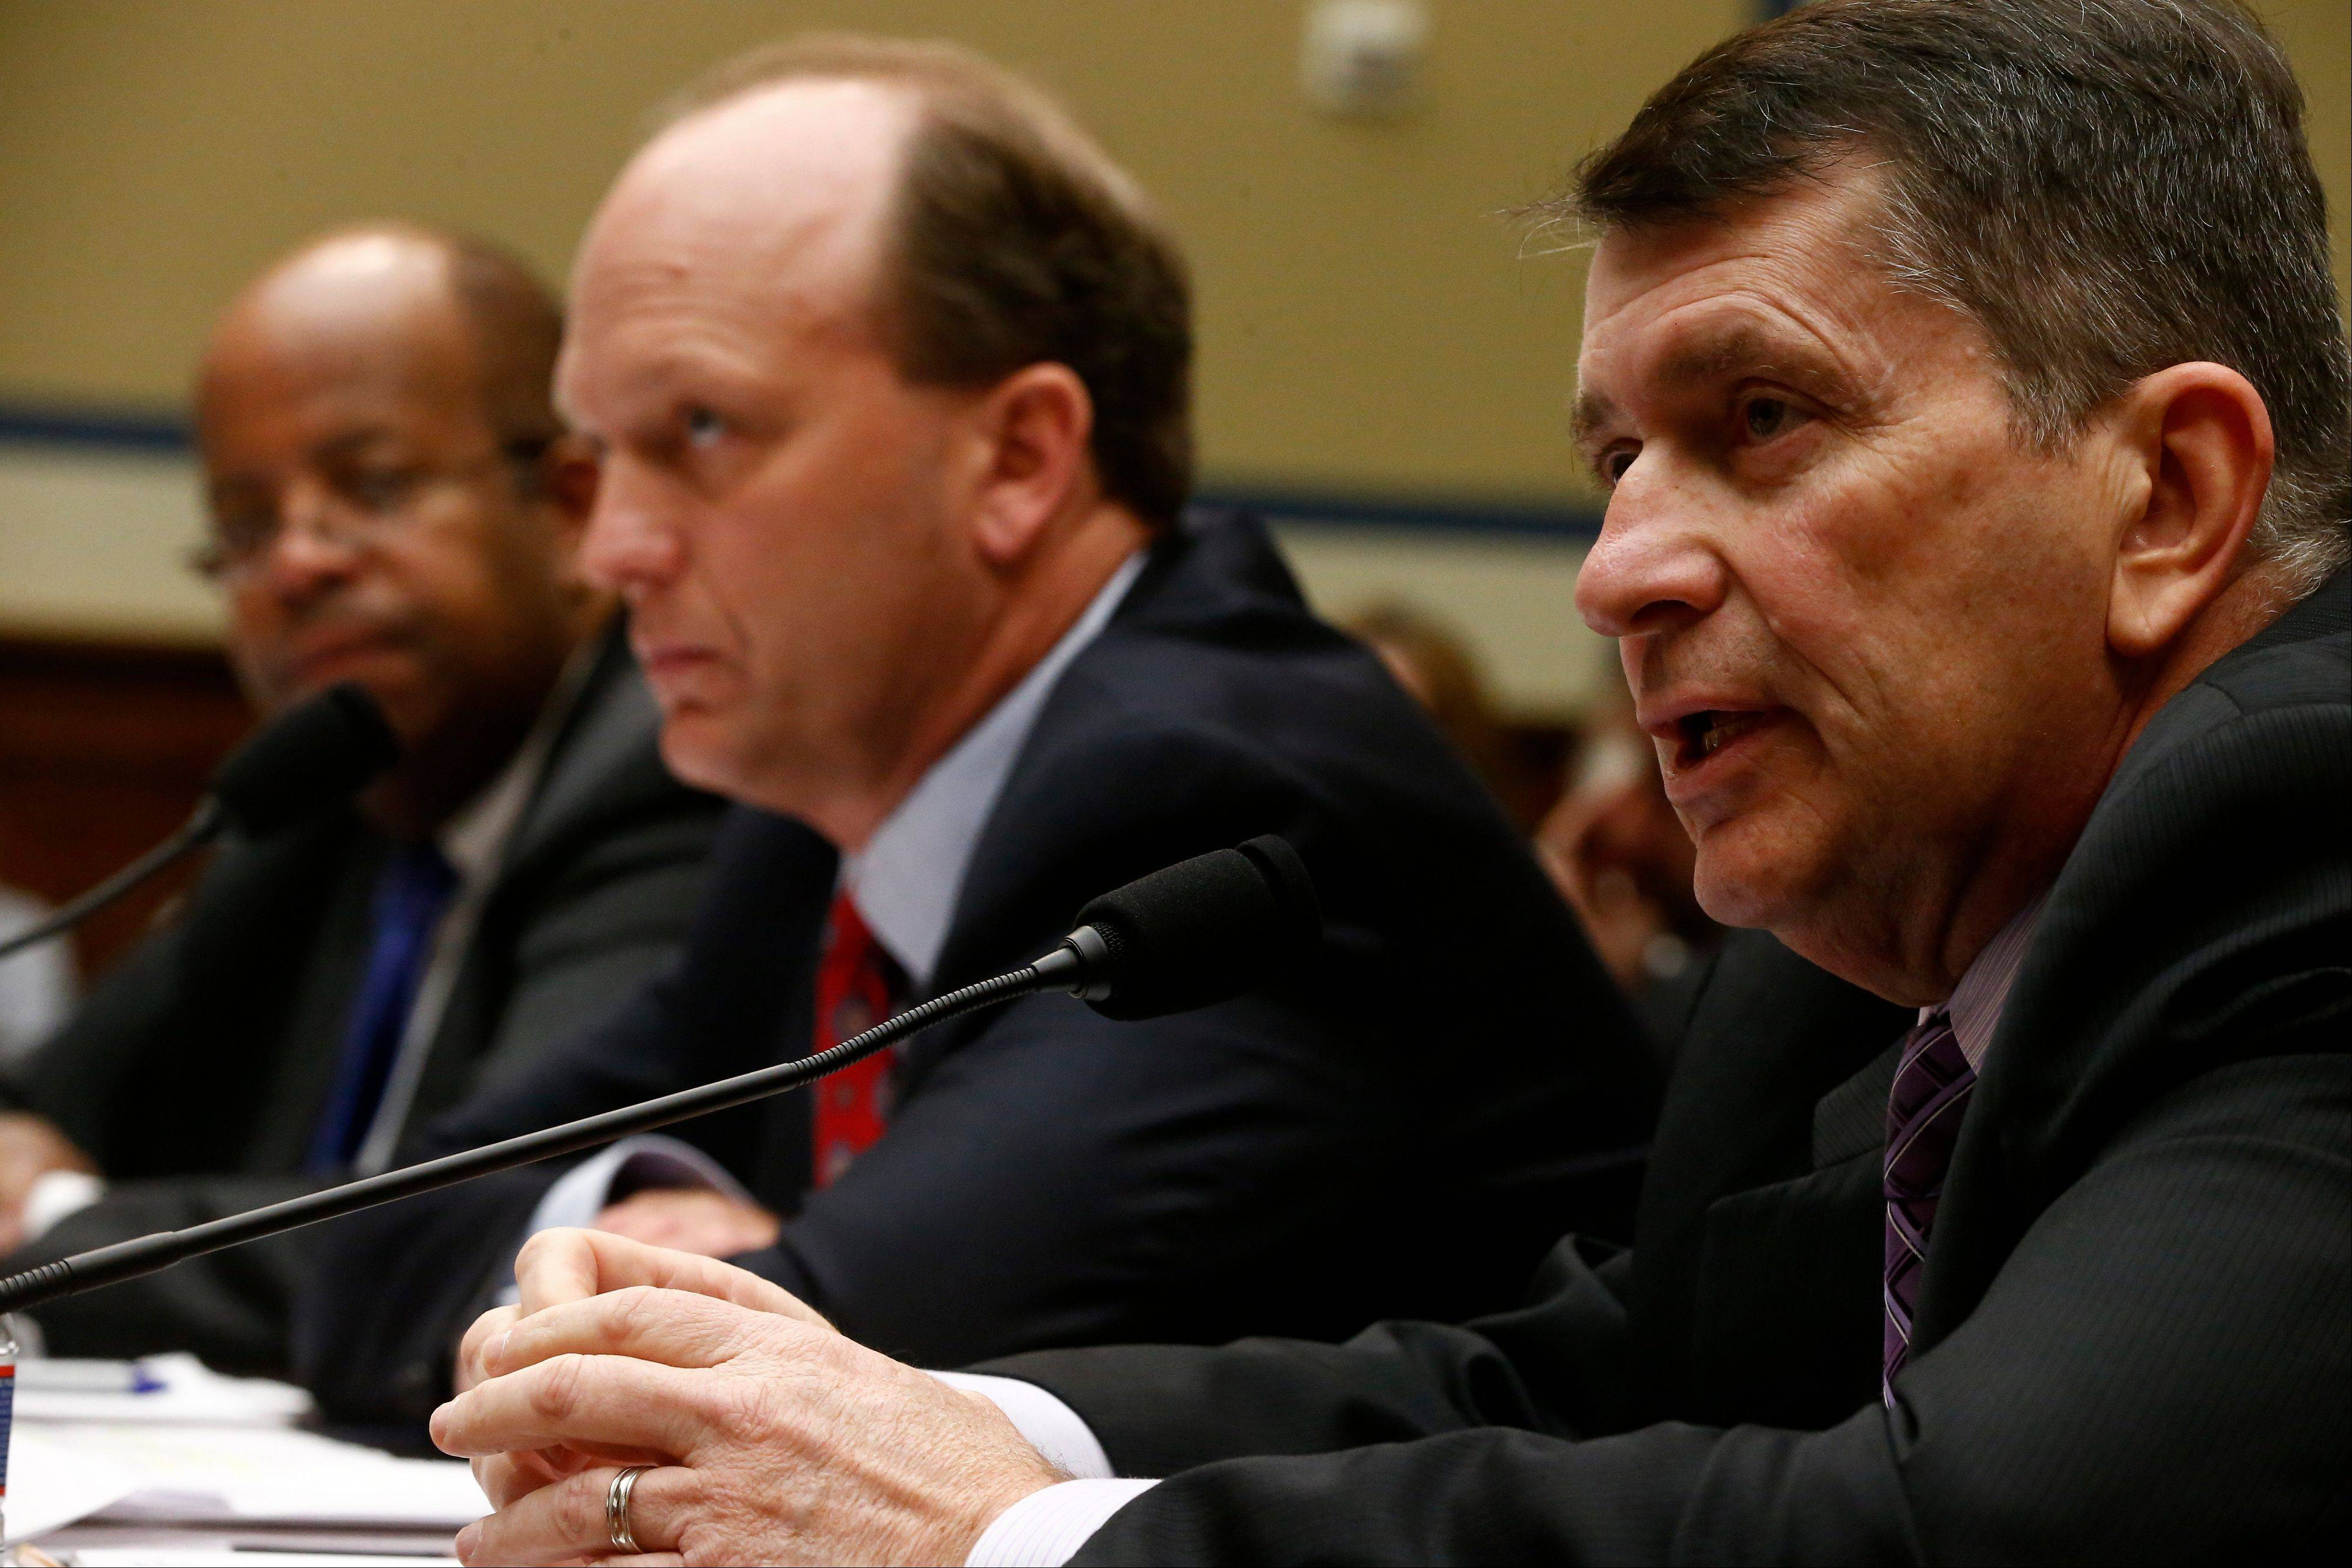 From left, J. Russell George, Inspector General, Treasury Inspector General for Tax Administration; Gregory Kutz, Assistant Inspector General for Audit, Treasury Inspector General for Tax Administration; Faris Fink, Commissioner, Small Business and Self-Employed Division, Internal Revenue Service testify Thursday on Capitol Hill.